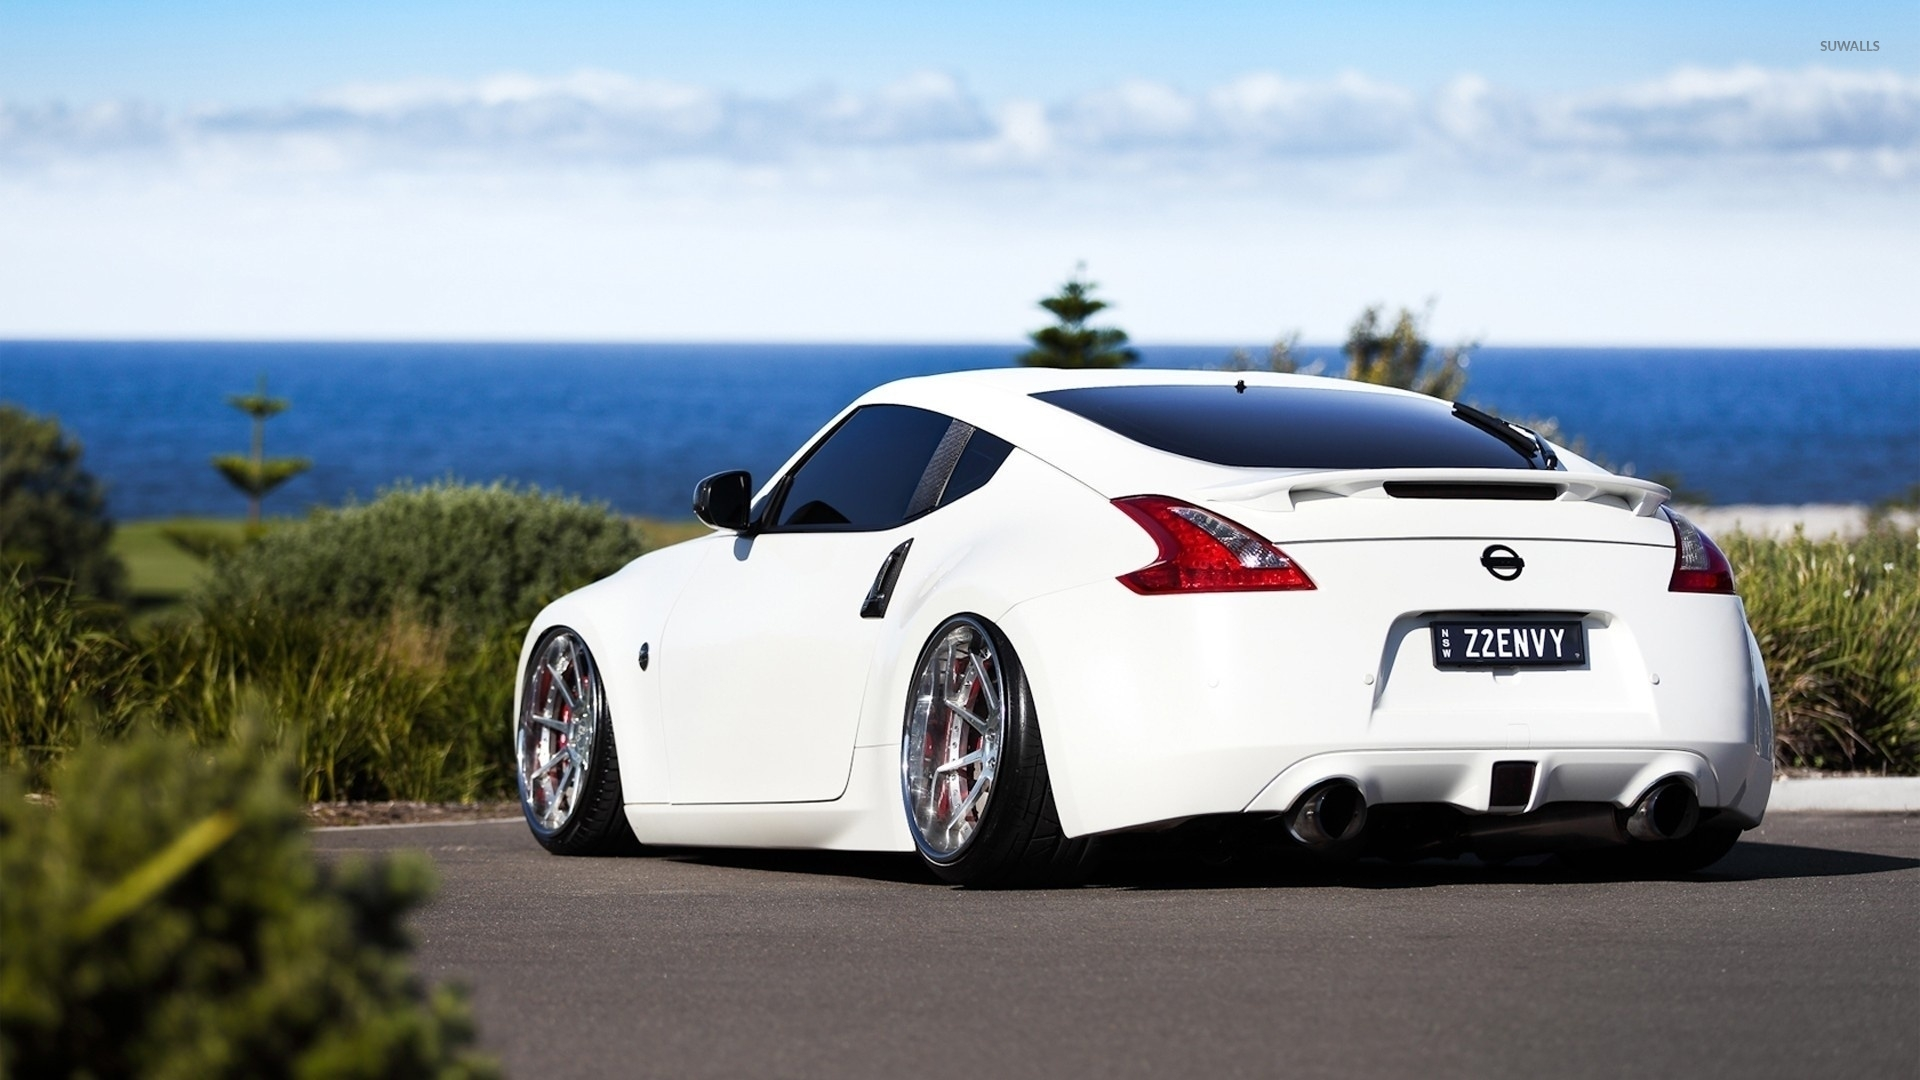 Back View Of A White Nissan 370Z Wallpaper